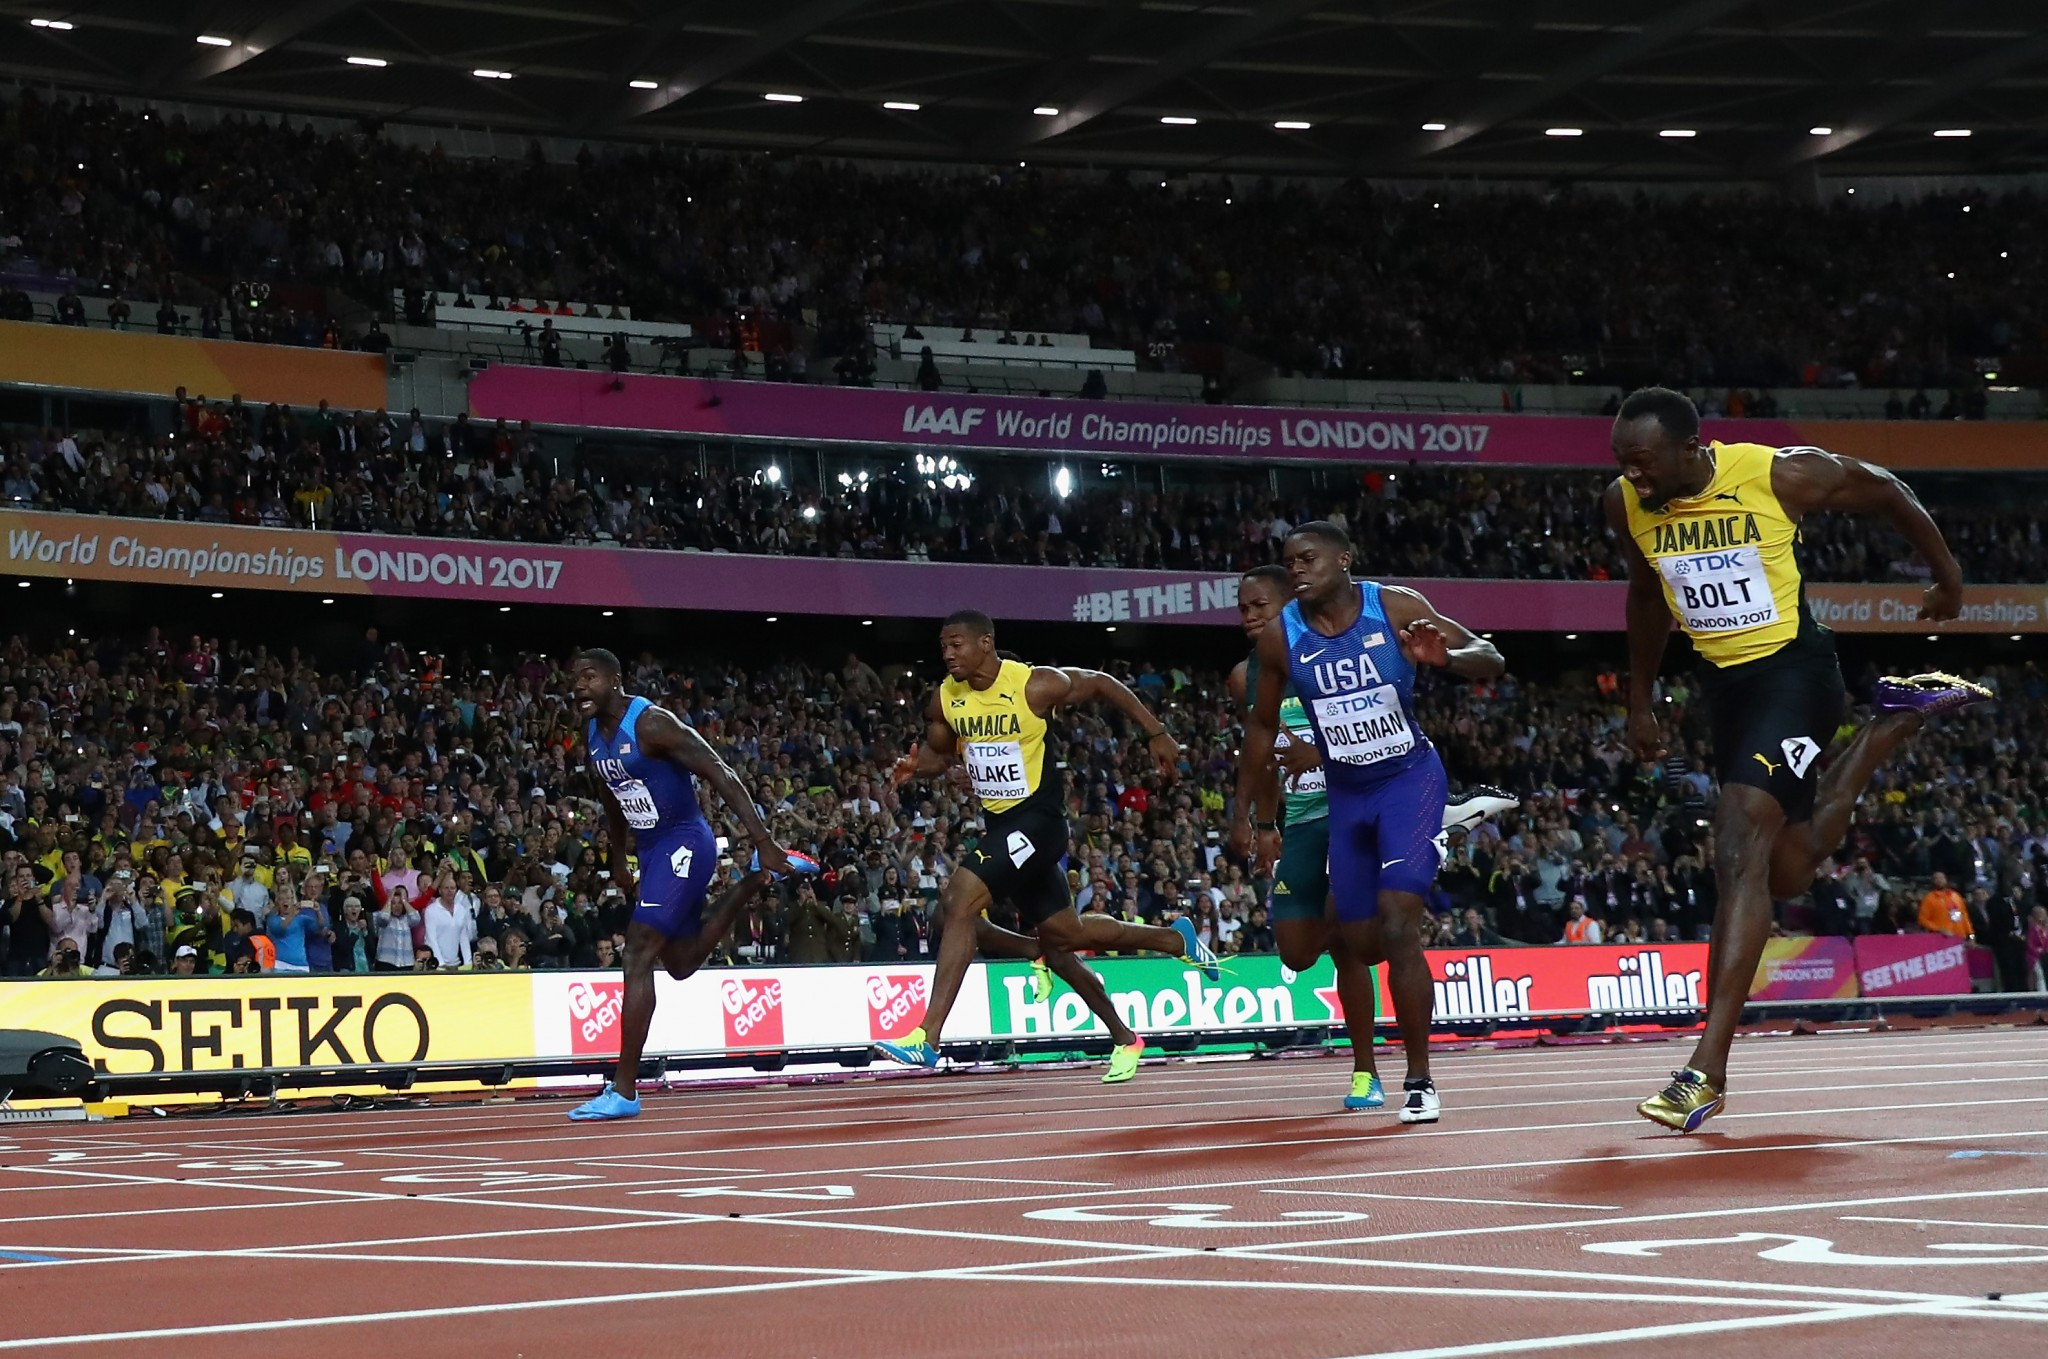 Jamaica's Prime Minister Andrew Holness has called for lifetime bans after Usain Bolt was beaten in the 100m by Justin Gatlin, far left, at the IAAF World Championships ©Getty Images